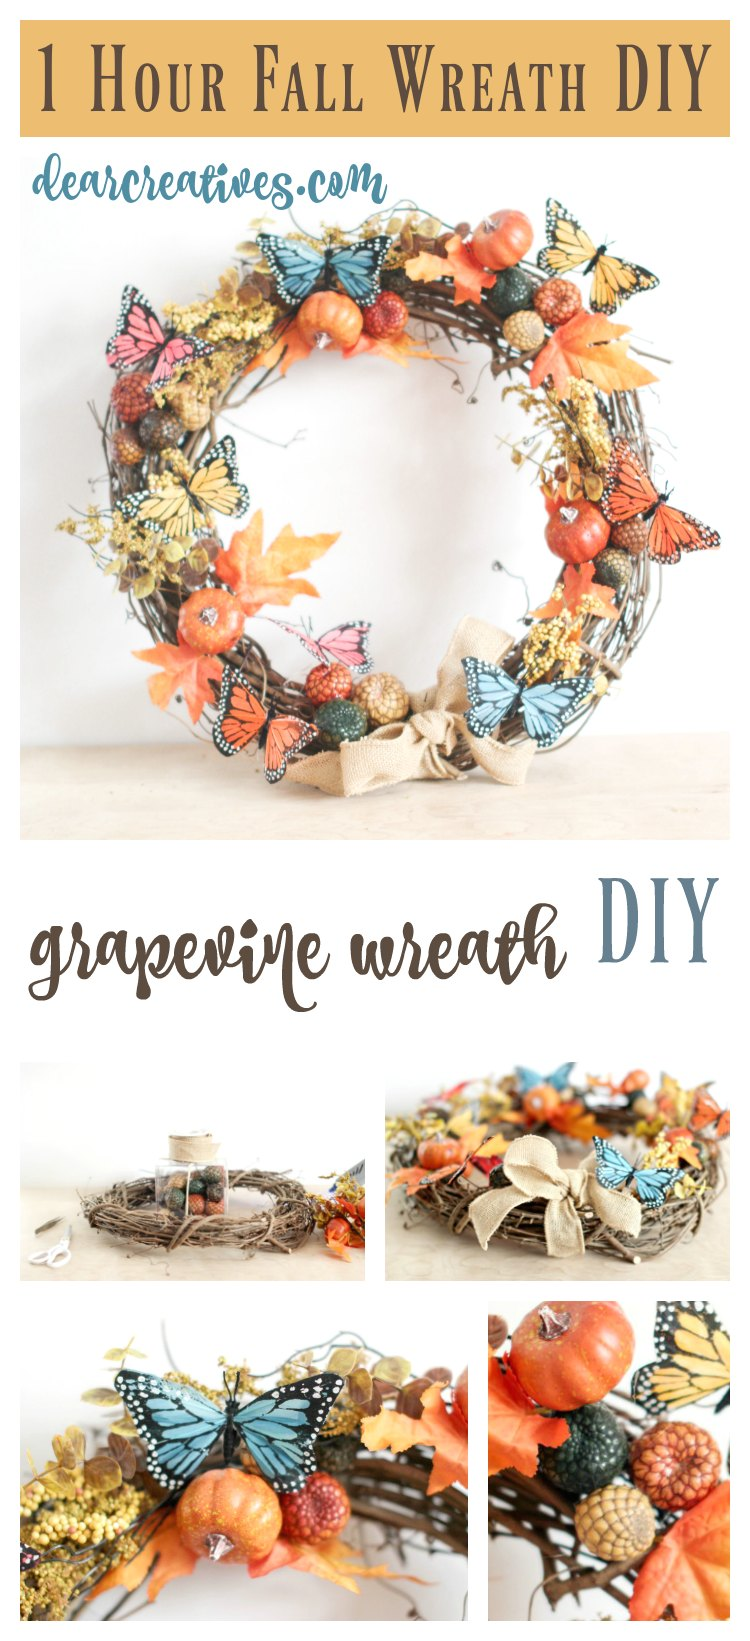 How To Decorate A Nature Inspired Grapevine Wreath For Fall In An Hour